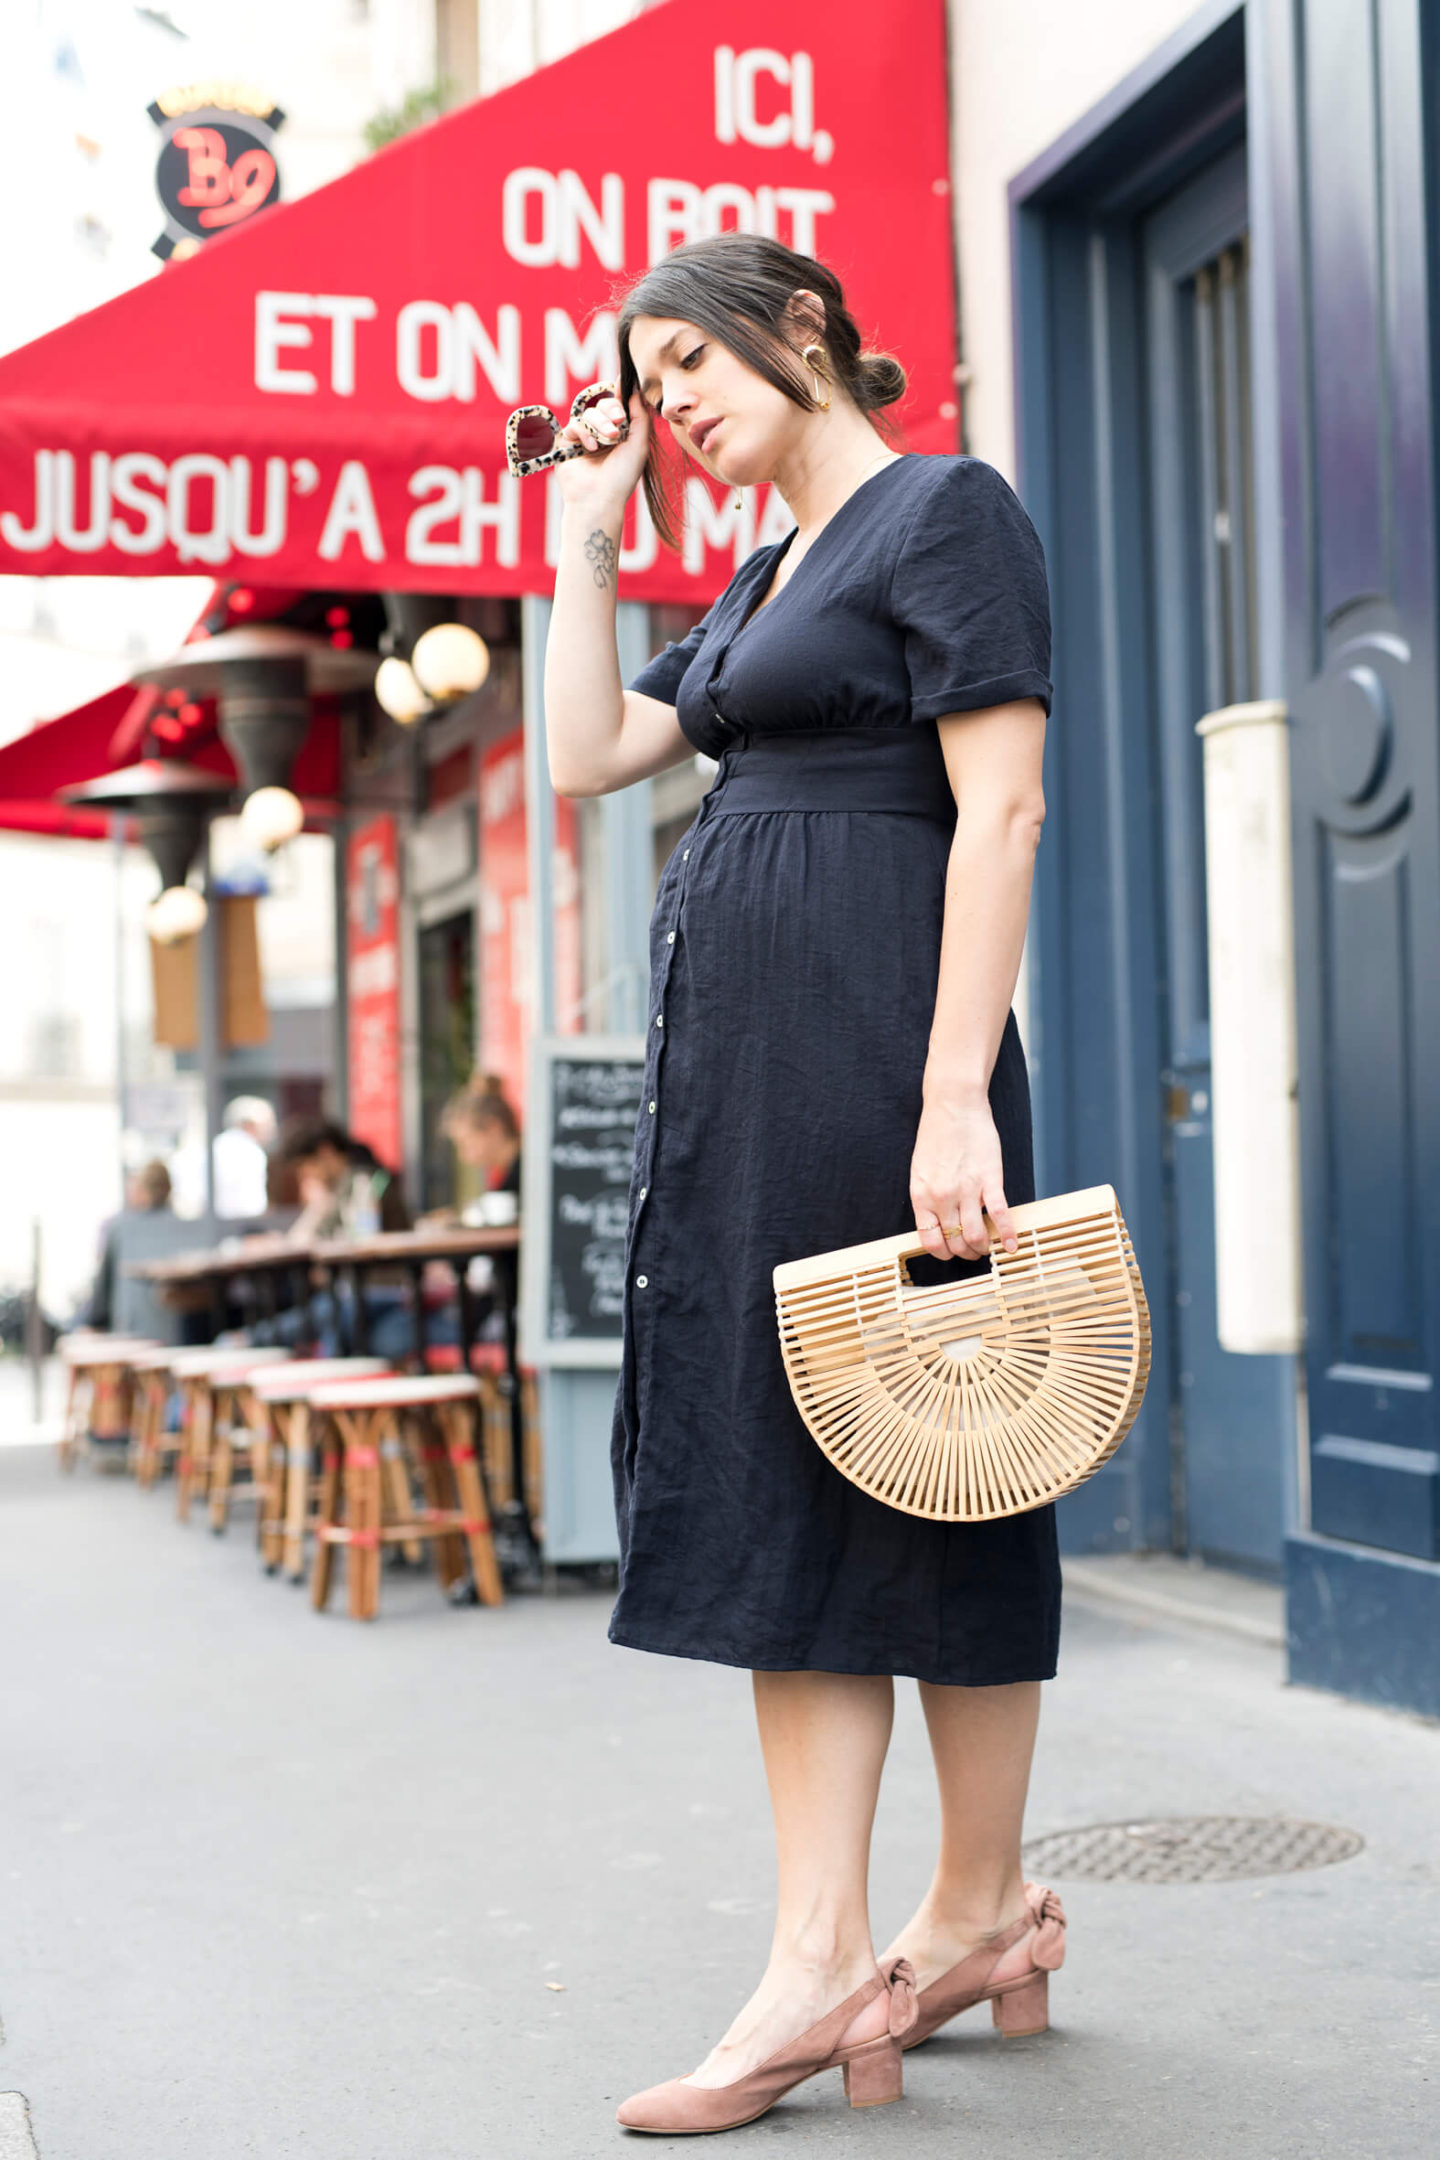 Robe Balzac Street style Paris L'atelier d'al blog mode fashion lifestyle